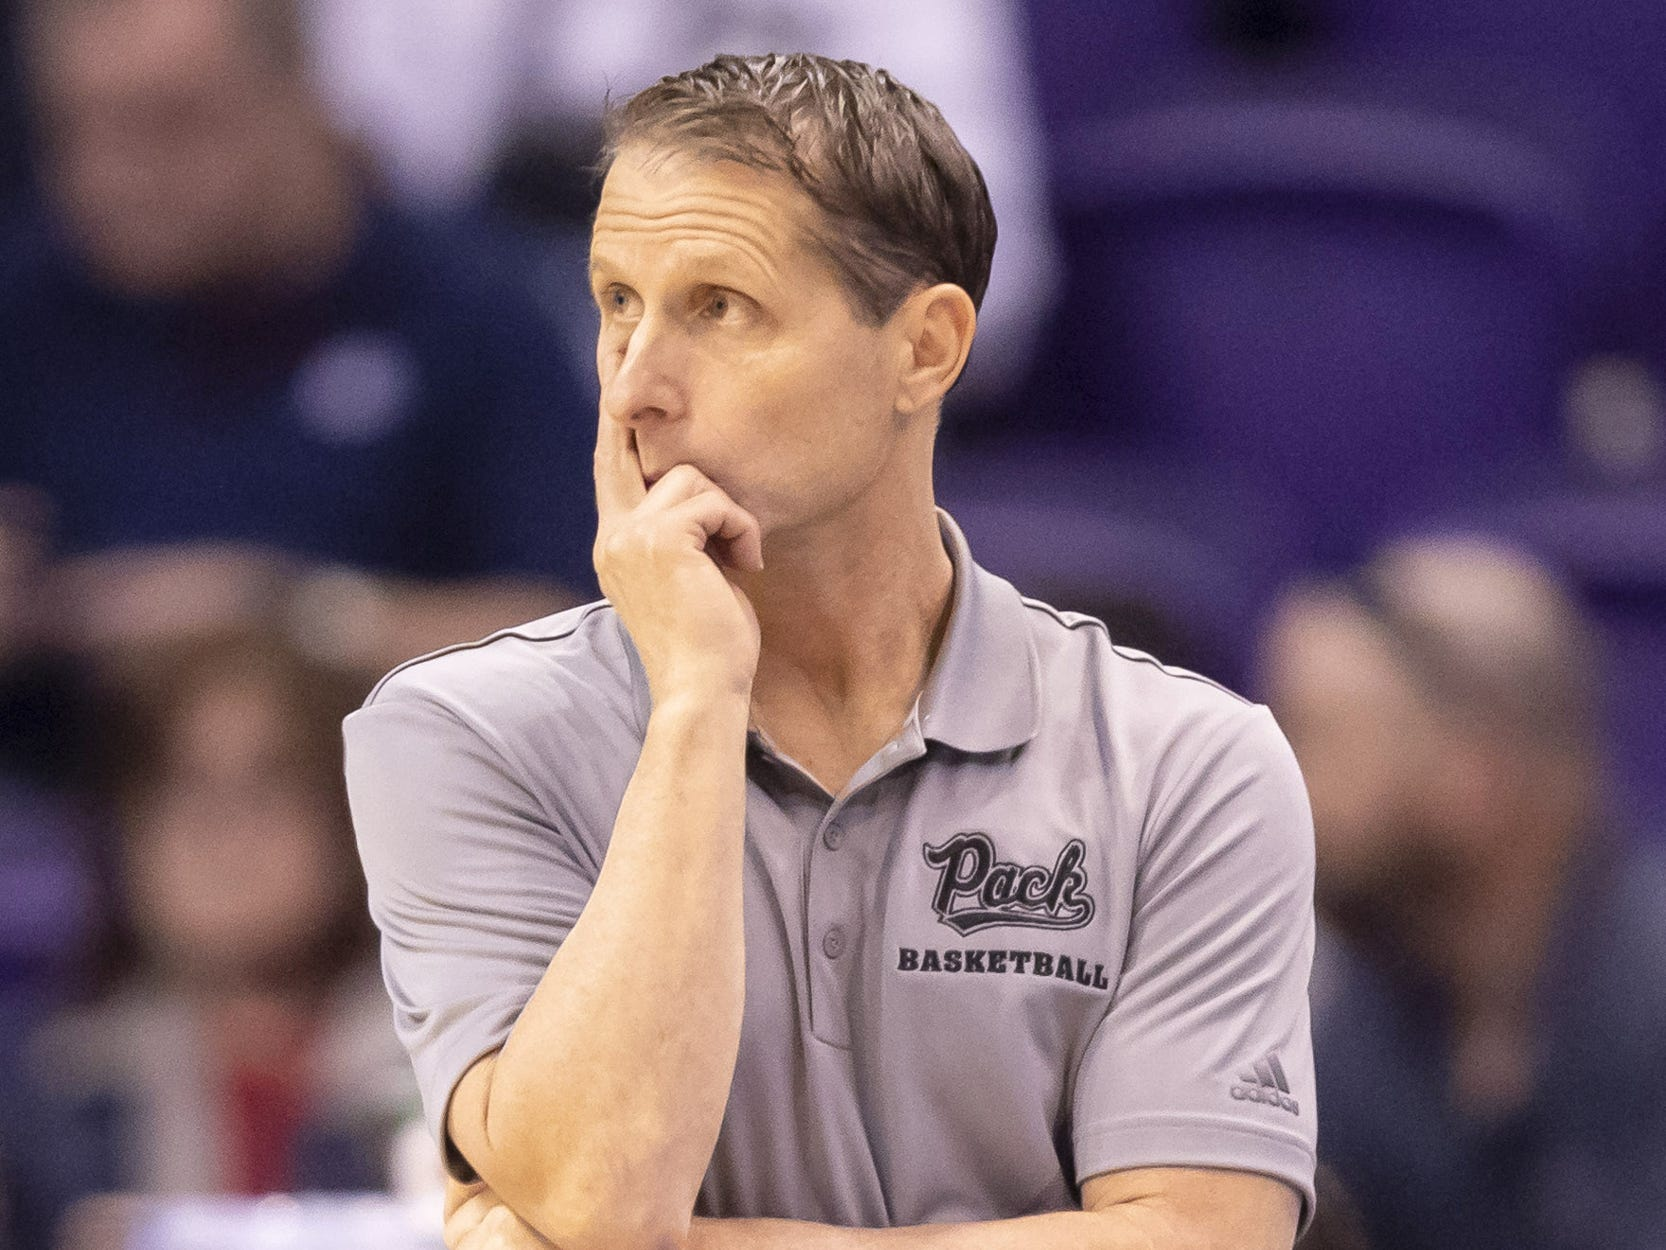 Head coach Eric Musselman of the Nevada Wolf Pack stands during the 2018 Jerry Colangelo Classic against the Grand Canyon Antelopes at Talking Stick Resort Arena on Sunday, December 9, 2018 in Phoenix, Arizona.